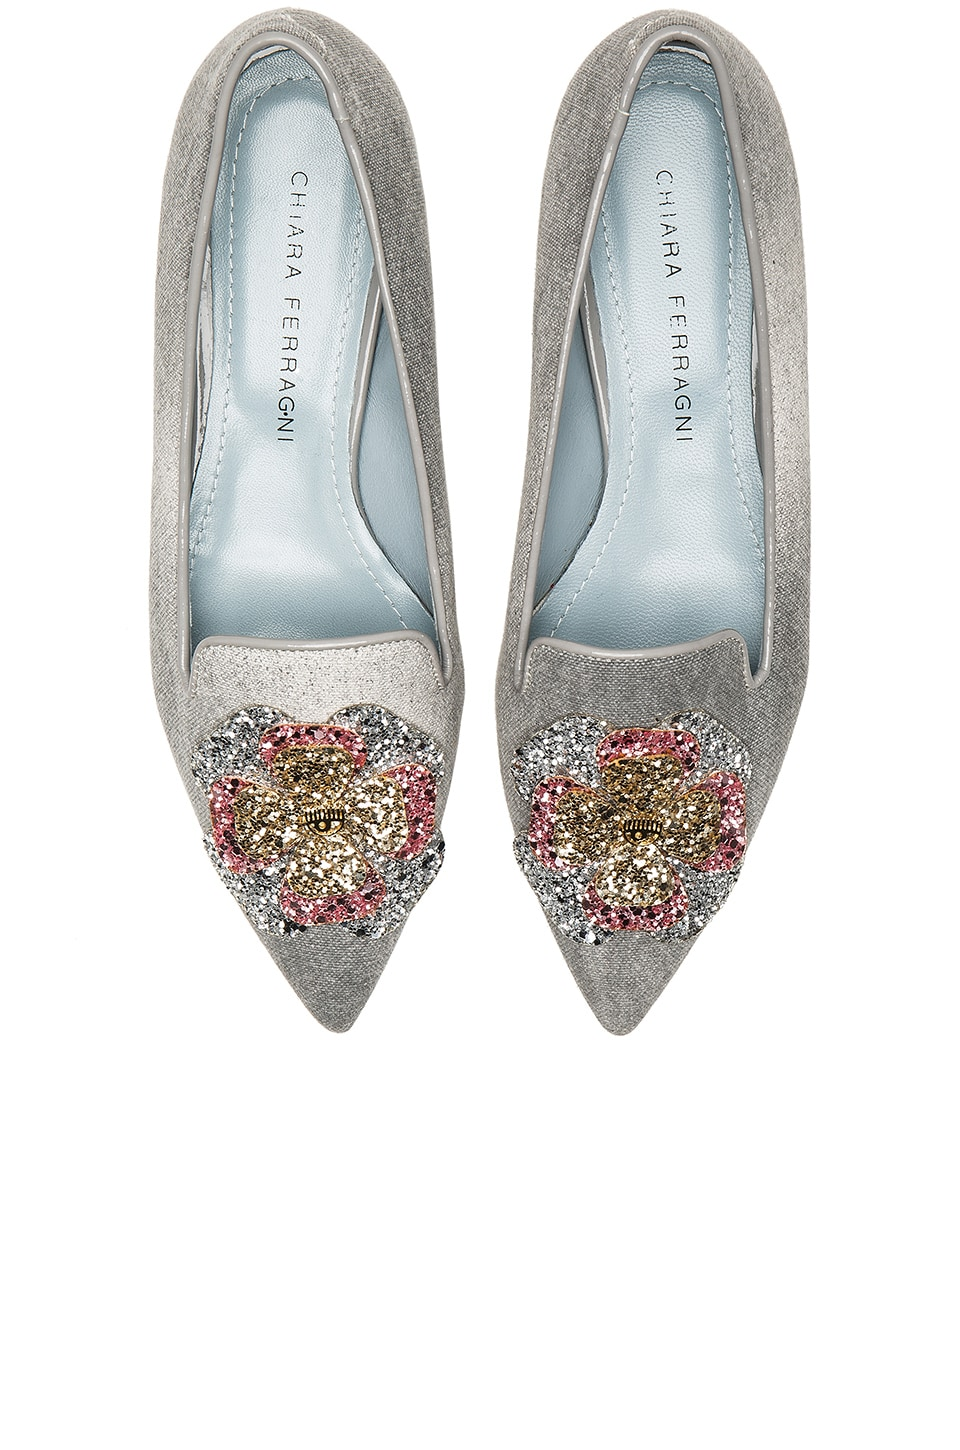 Chiara Ferragni Pointed Slipper in Grey